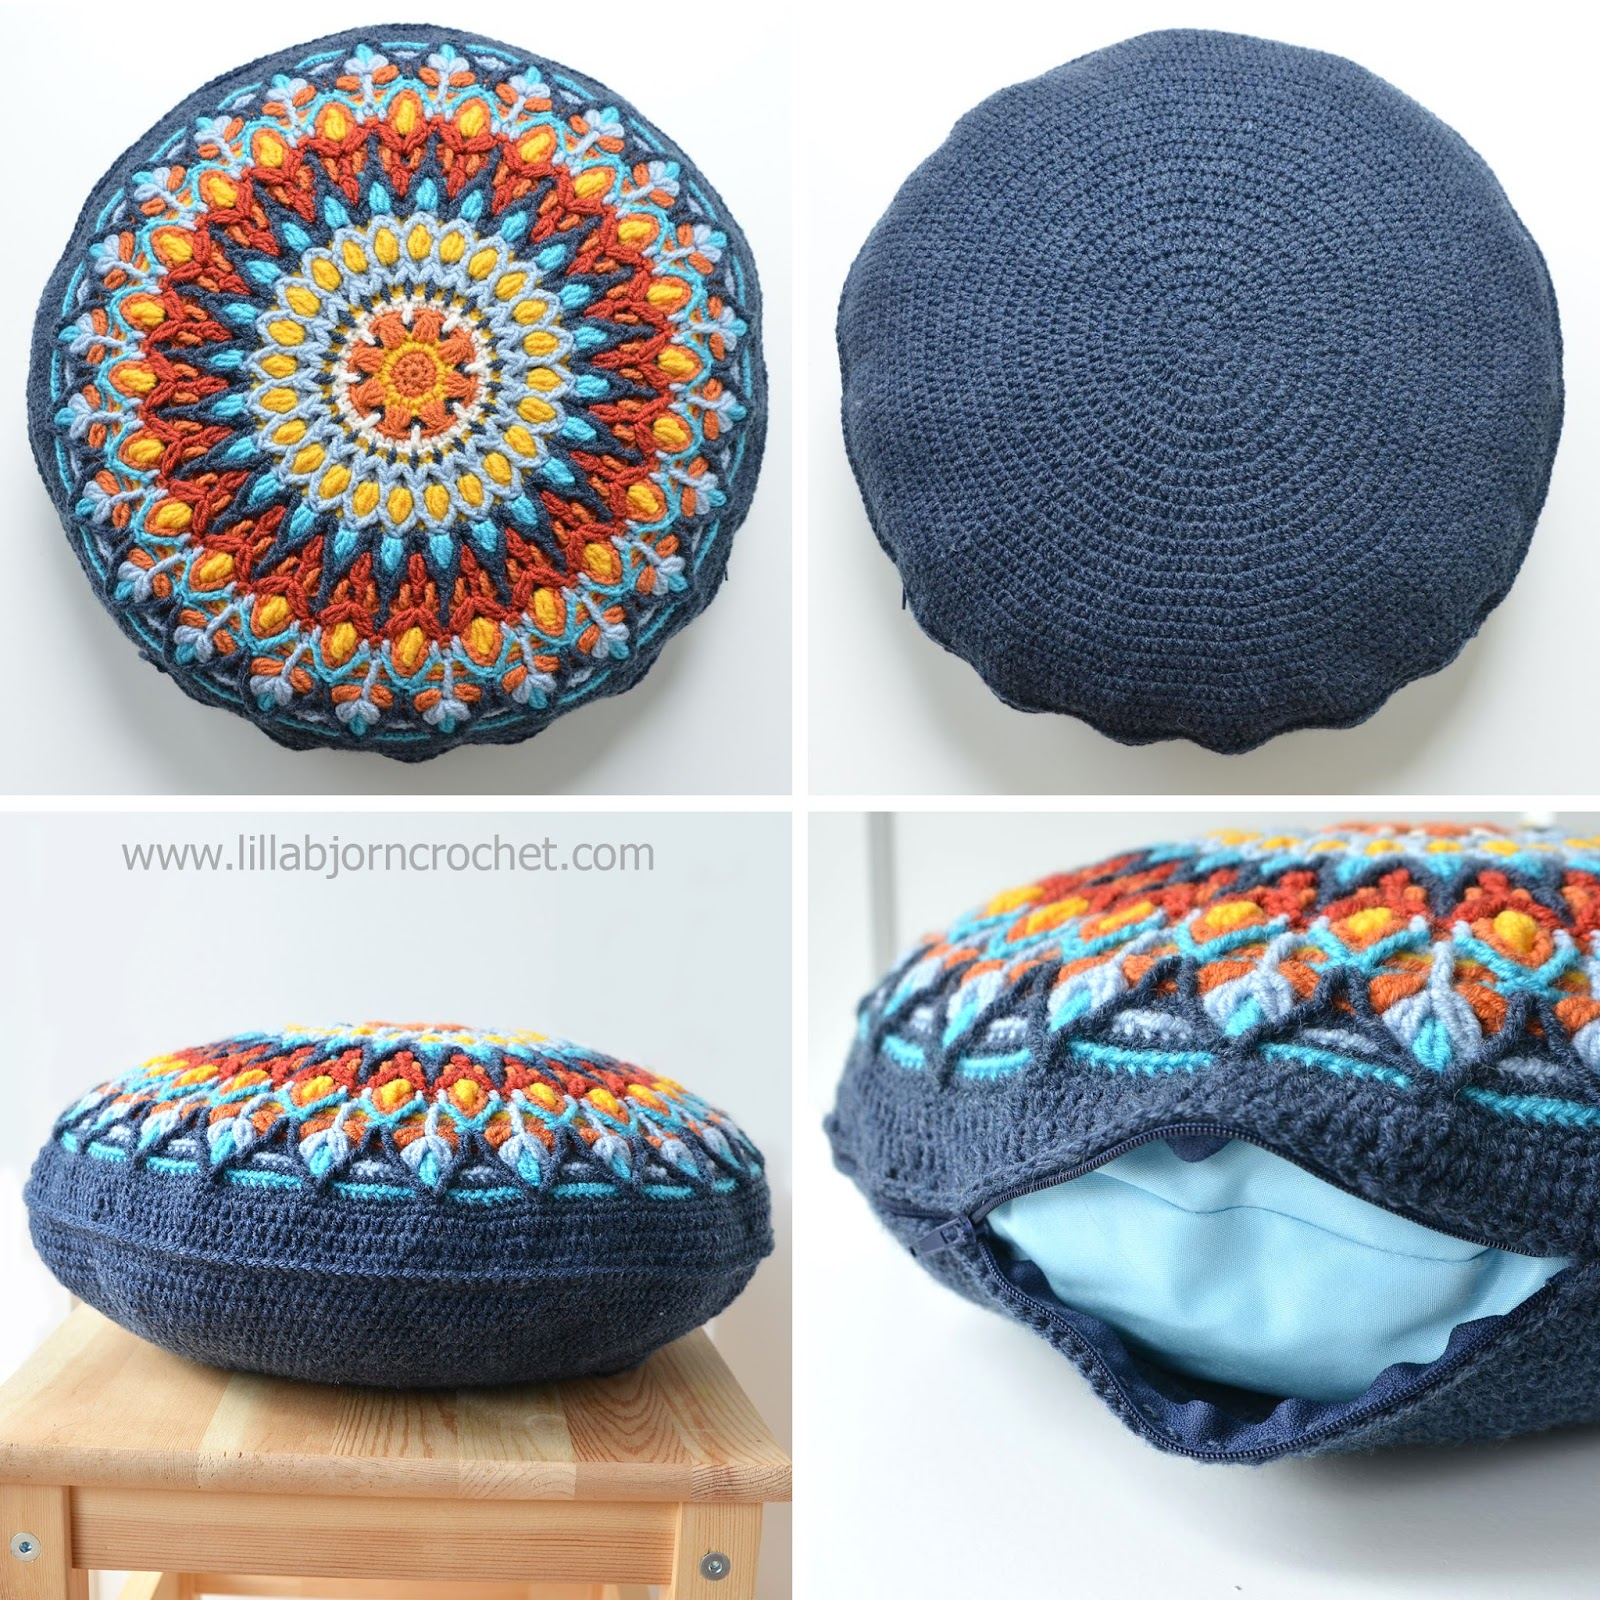 How To Make A Round Pillow - Round Designs